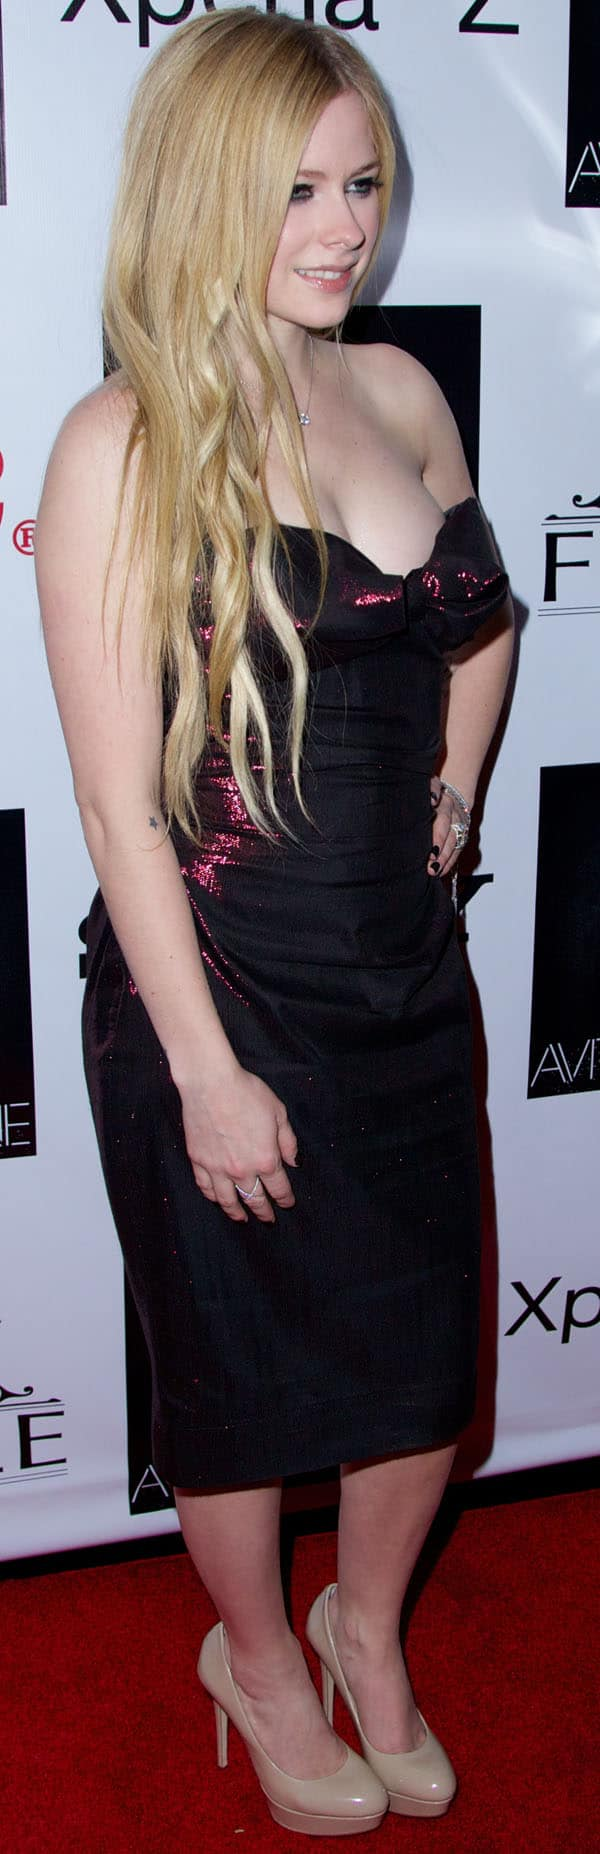 Avril Lavigne generously frosted her arms and hands with graceful yet heavily encrusted jewels